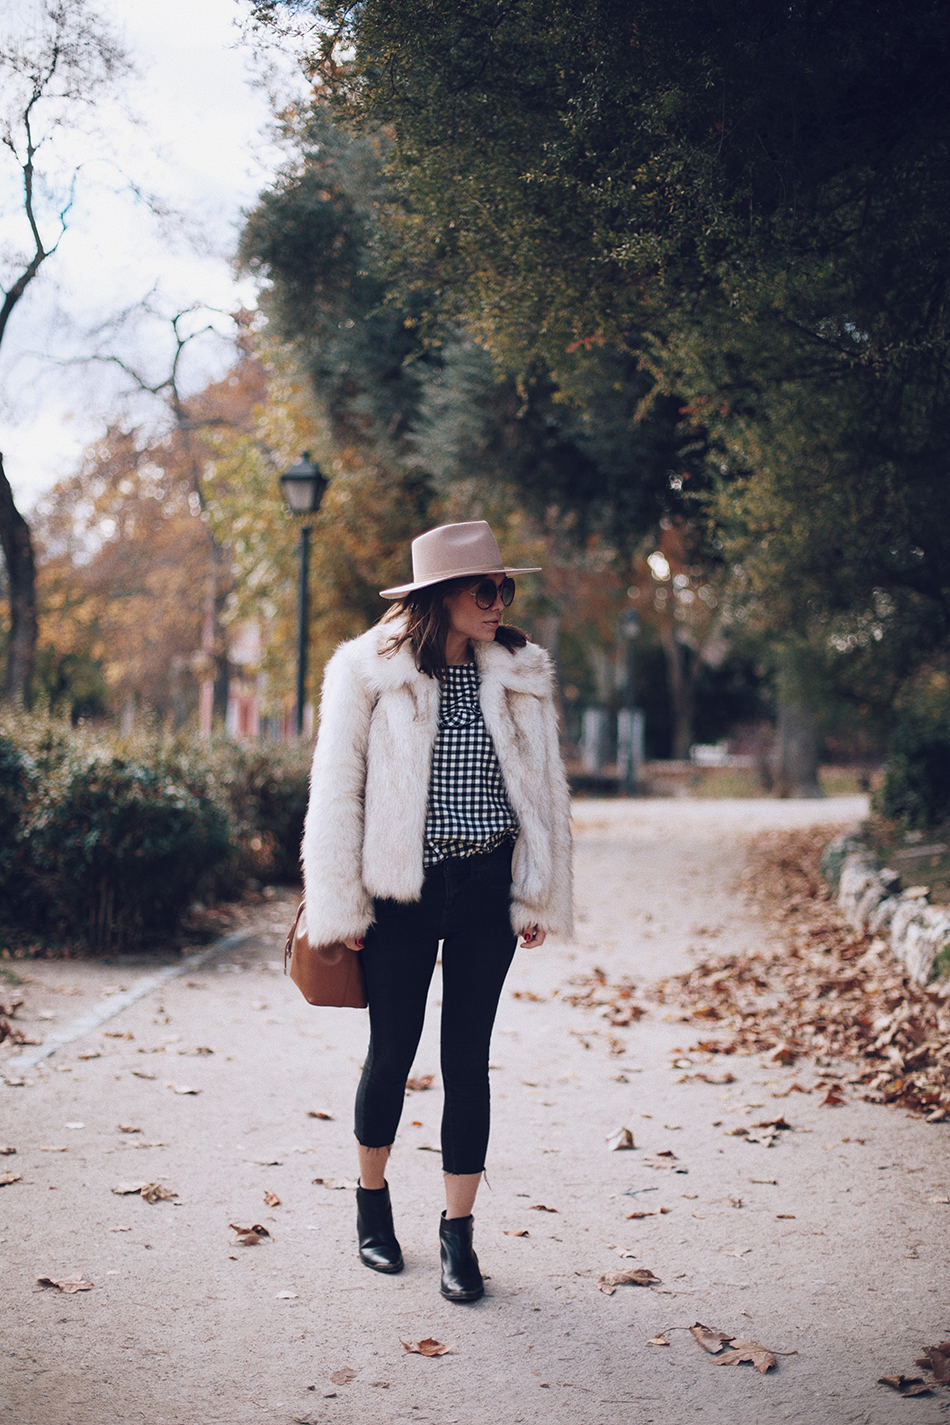 Bárbara Crespo street style. Vichy print blusa/ blouse: Leon and harper, Botines/Boots: Chloé. Sombrero/Hat: Lack of Color. Jeans: Reiko / Trendy outfit